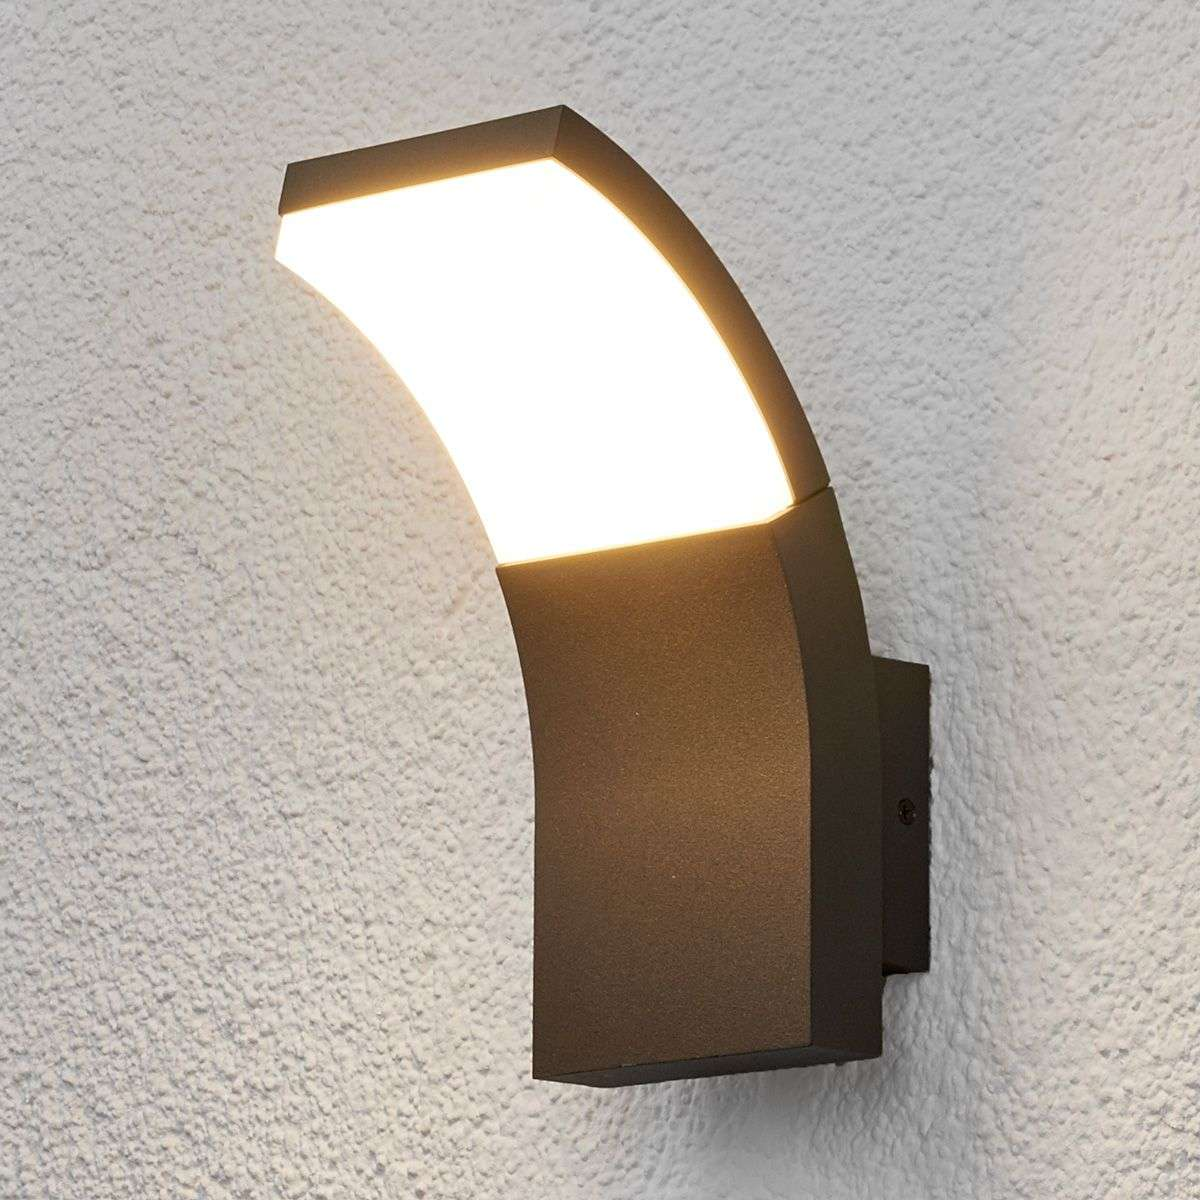 Led outdoor wall light timm lights led outdoor wall light timm workwithnaturefo